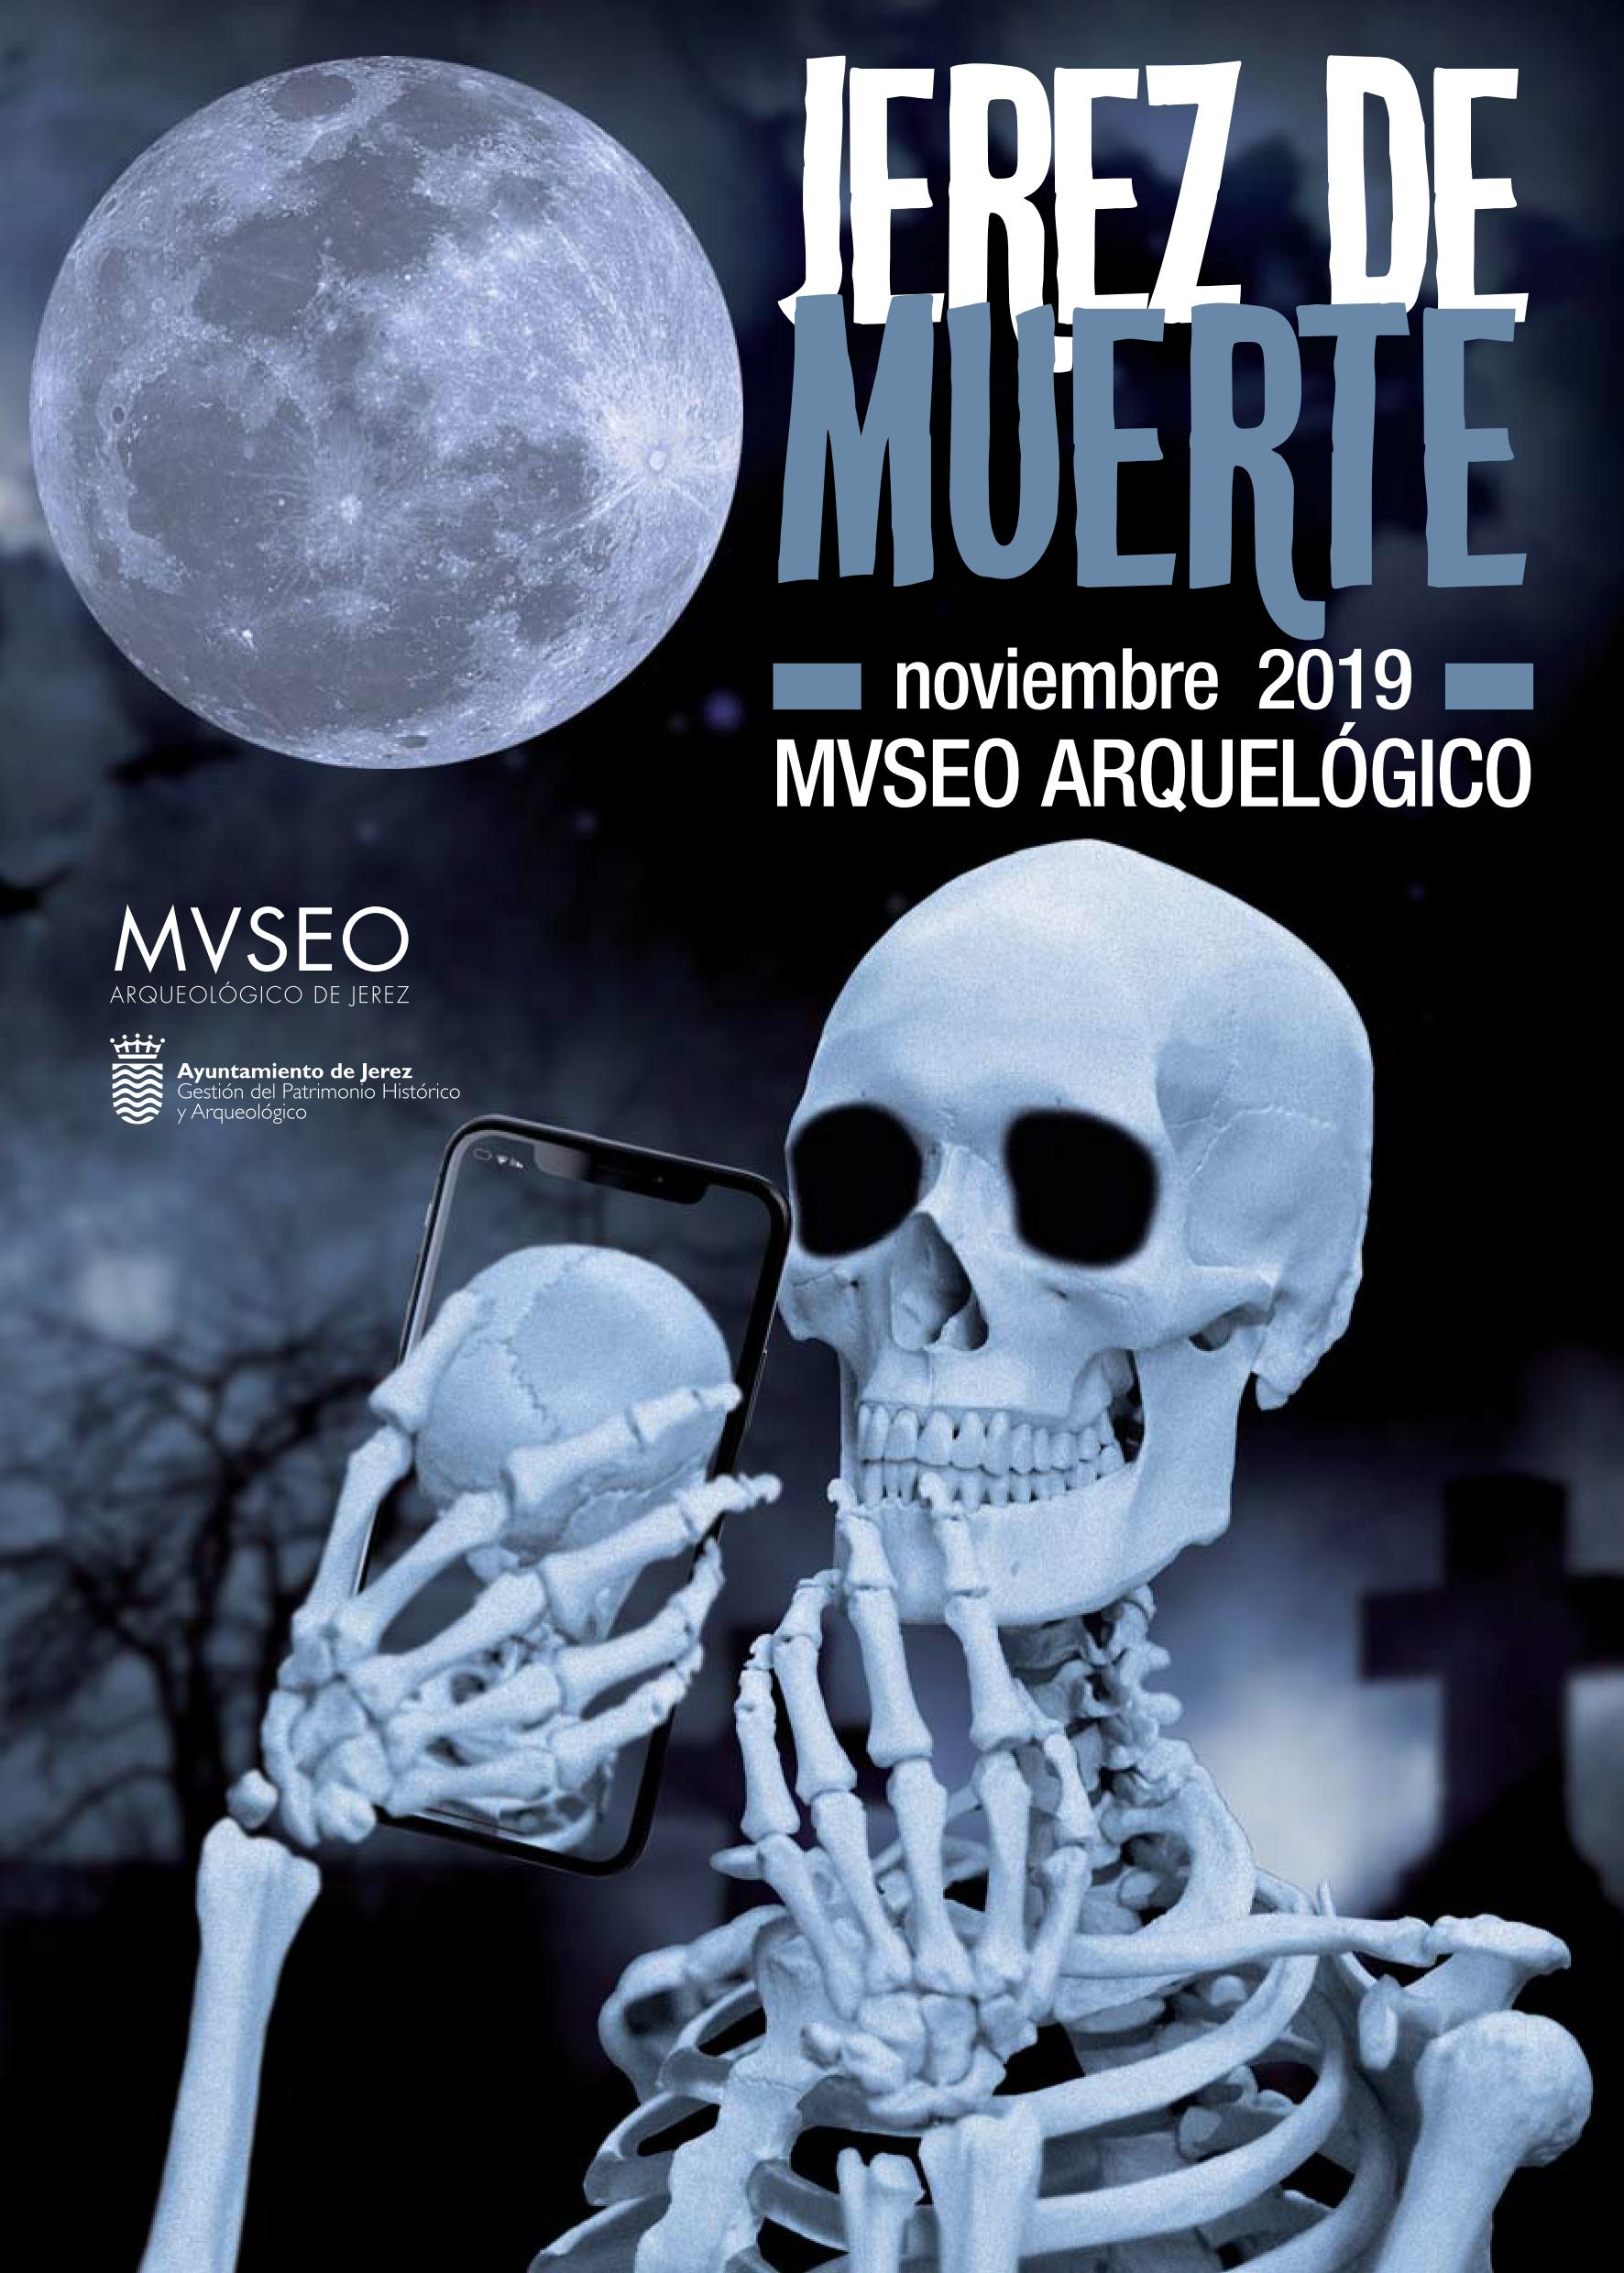 sites/default/files/2019_AGENDA/halloween/Programa_Jerez_de_Muerte_01.jpg